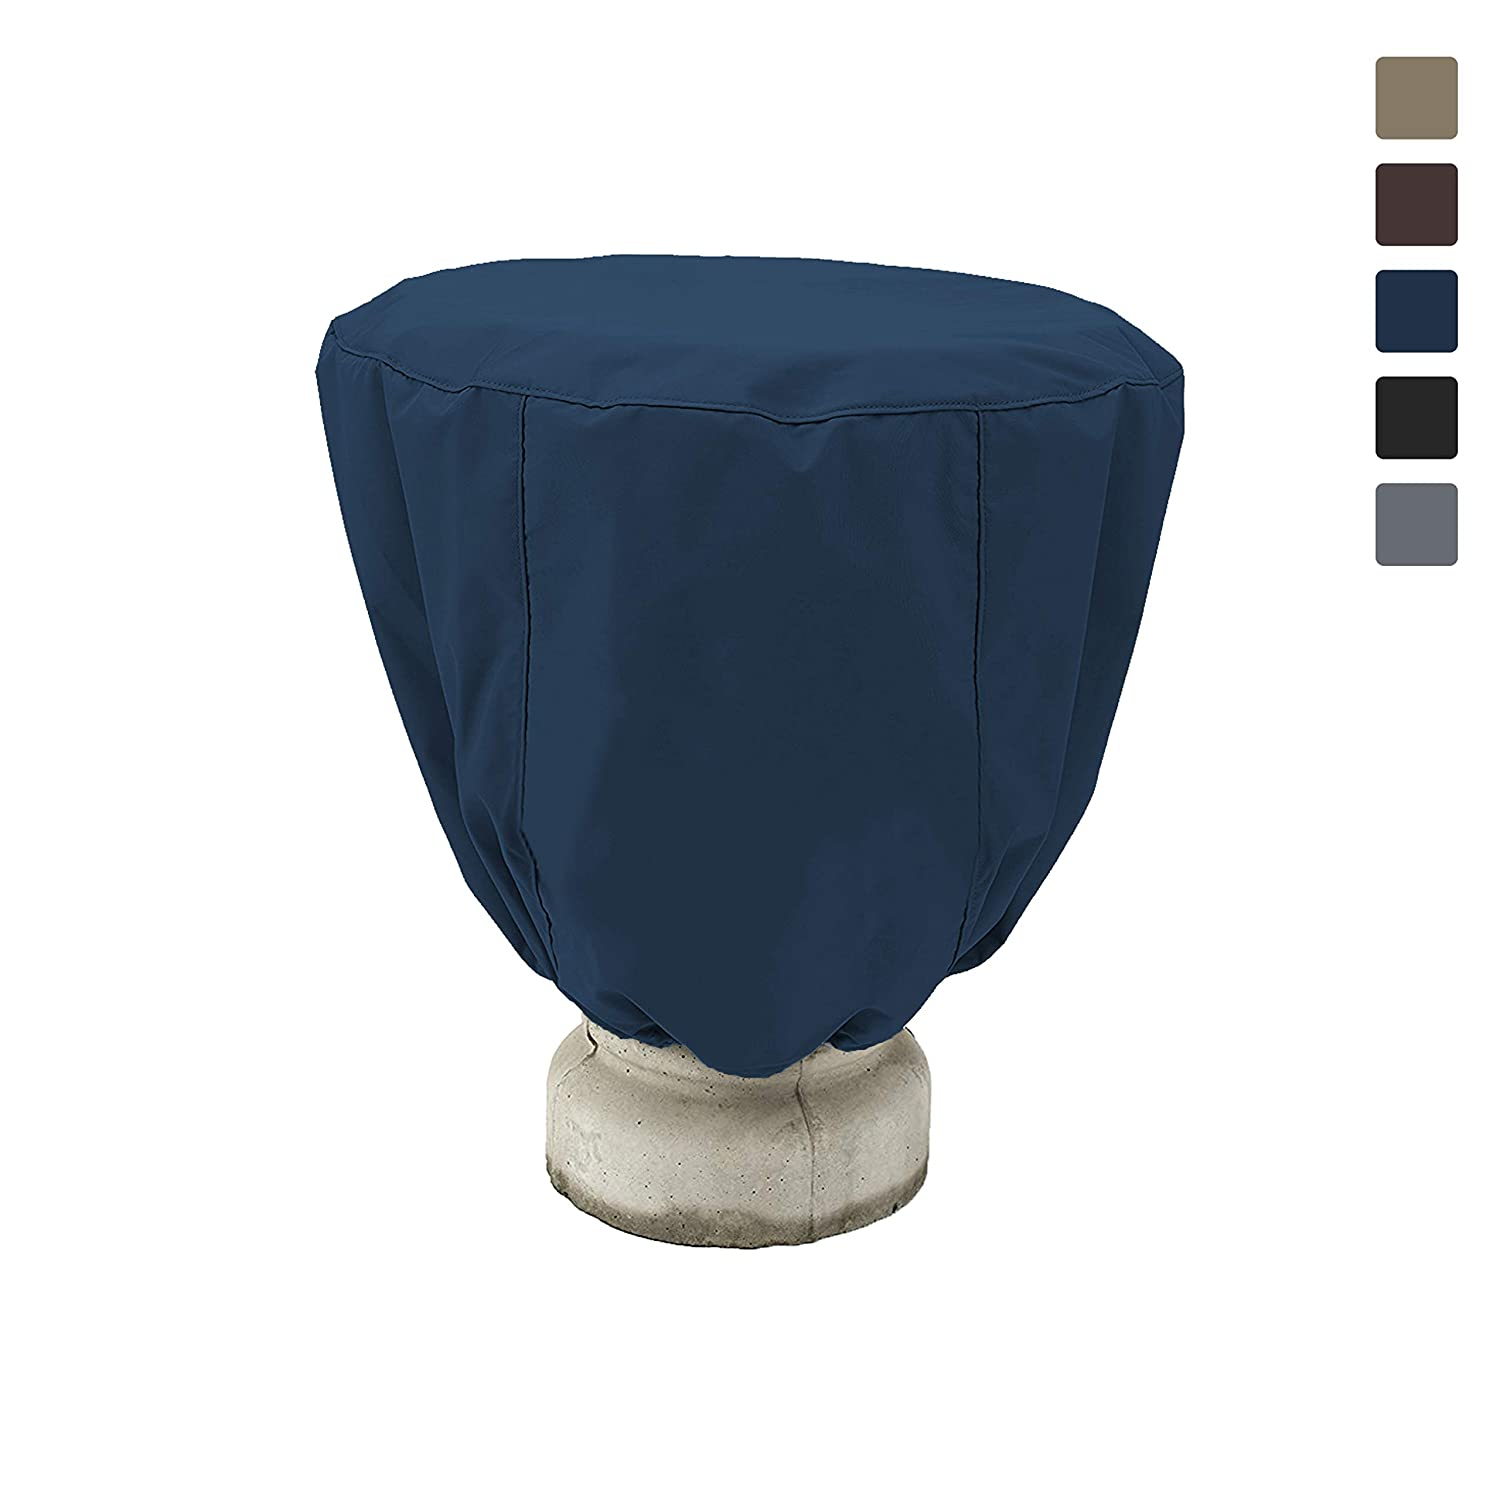 Bird Bath Cover 18 Oz Waterproof - Customize Cover with Any Size - 100% UV Weather Resistant Outdoor Cover with Elastic and Drawstring for Snug Fit (32' Dia x 24' H, Blue)